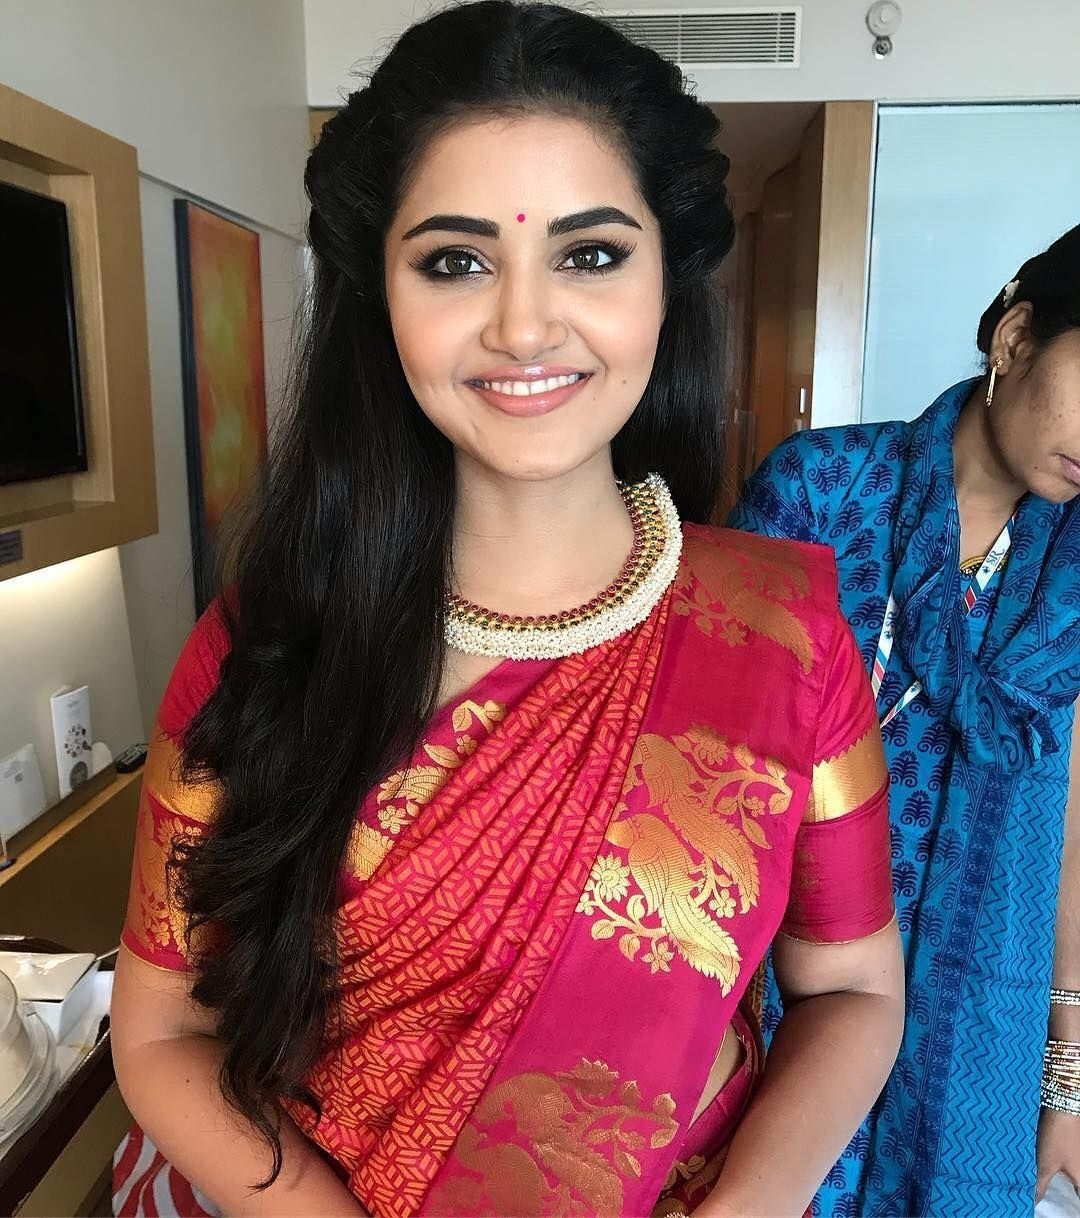 Top 10 South Indian Style Hairstyles For Round Faces | Hair regarding South Indian Wedding Hairstyle For Round Chubby Face